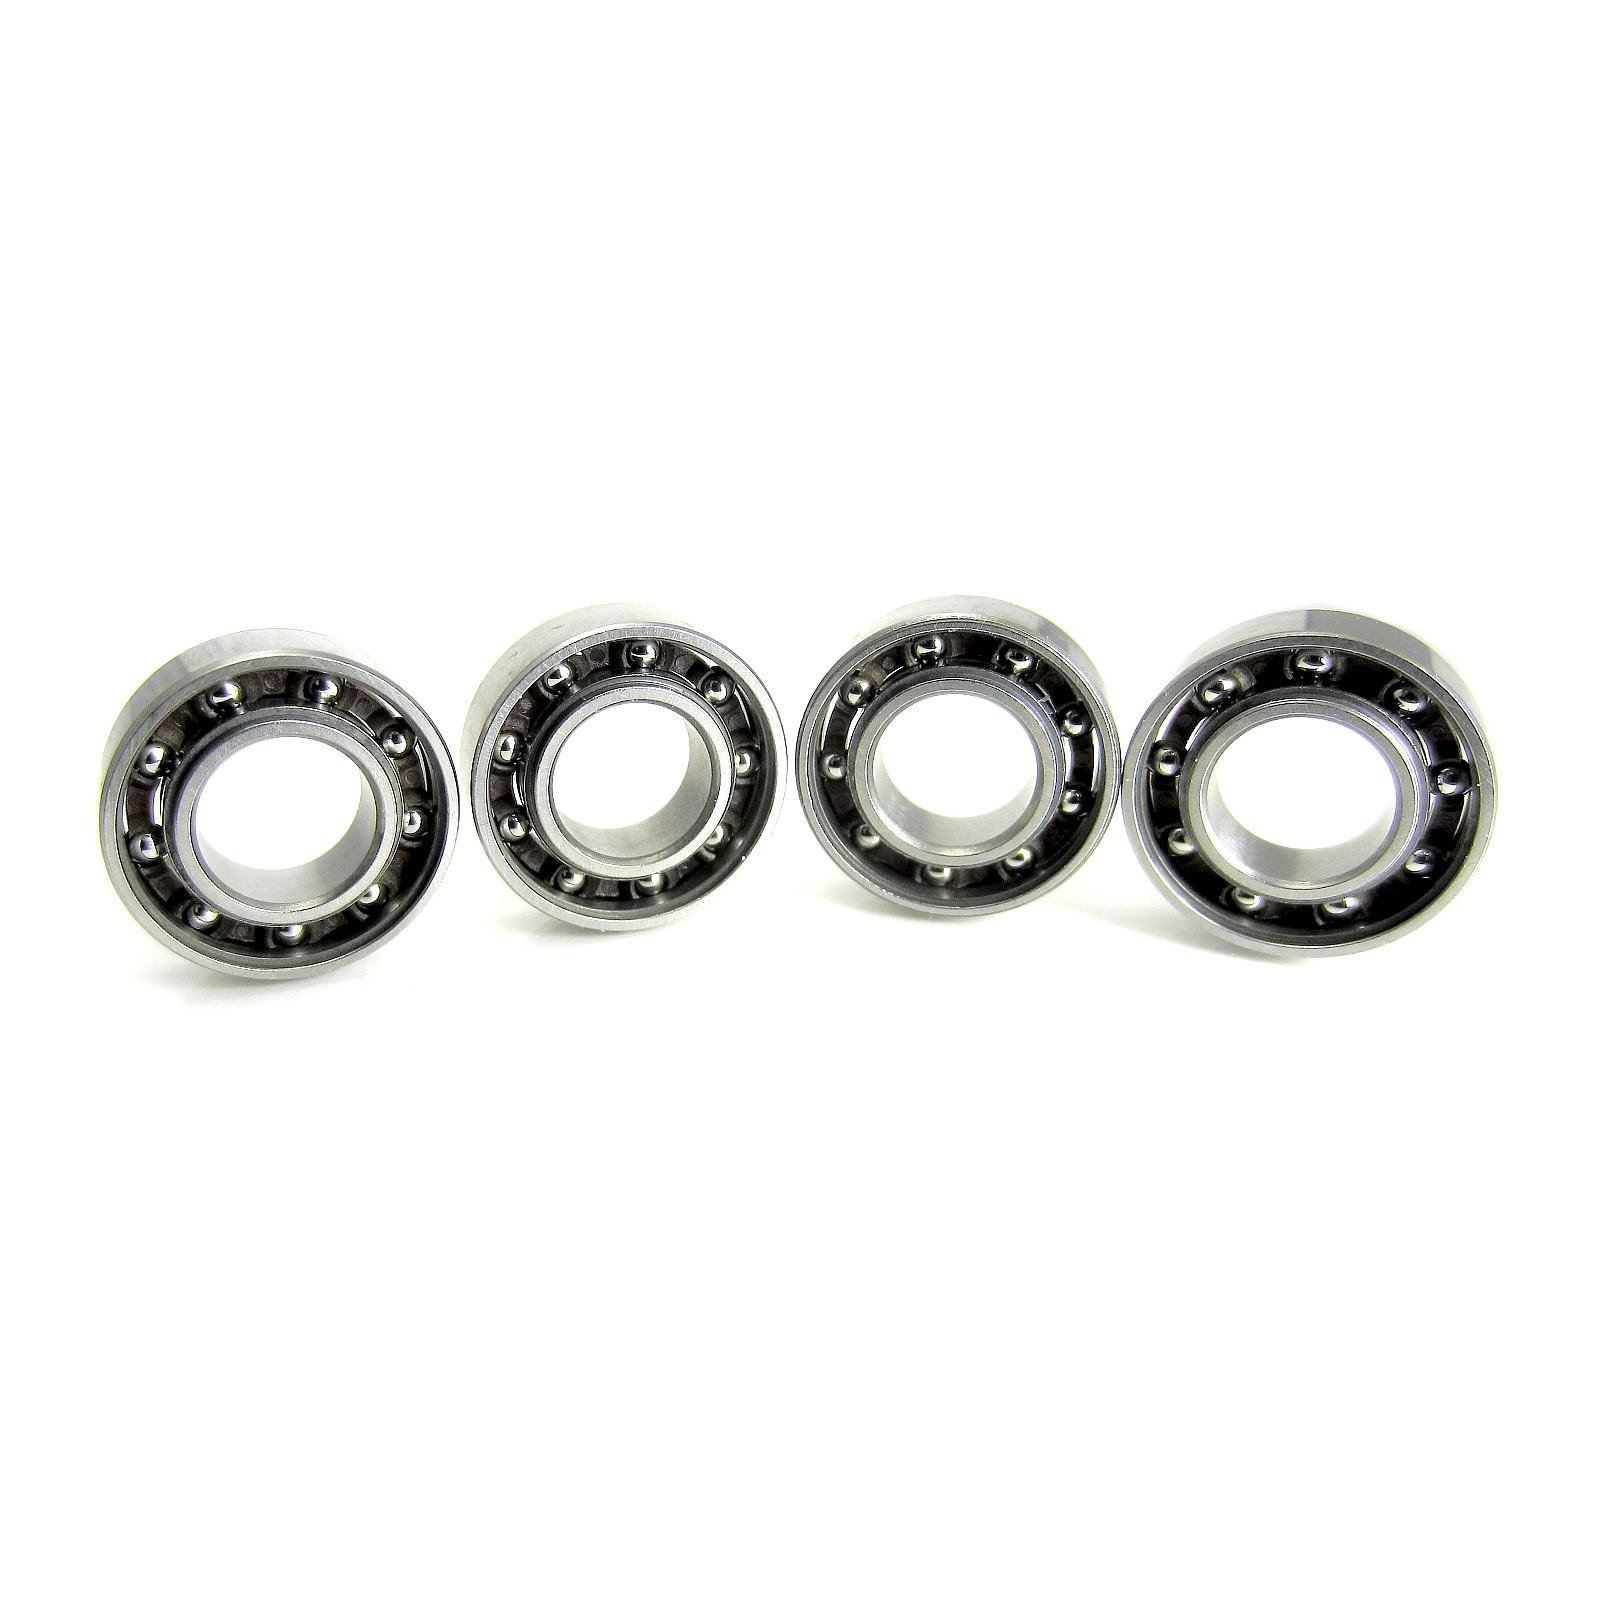 8x16x5mm 688 Open A5 Precision Ball Bearings (4) by TRB RC